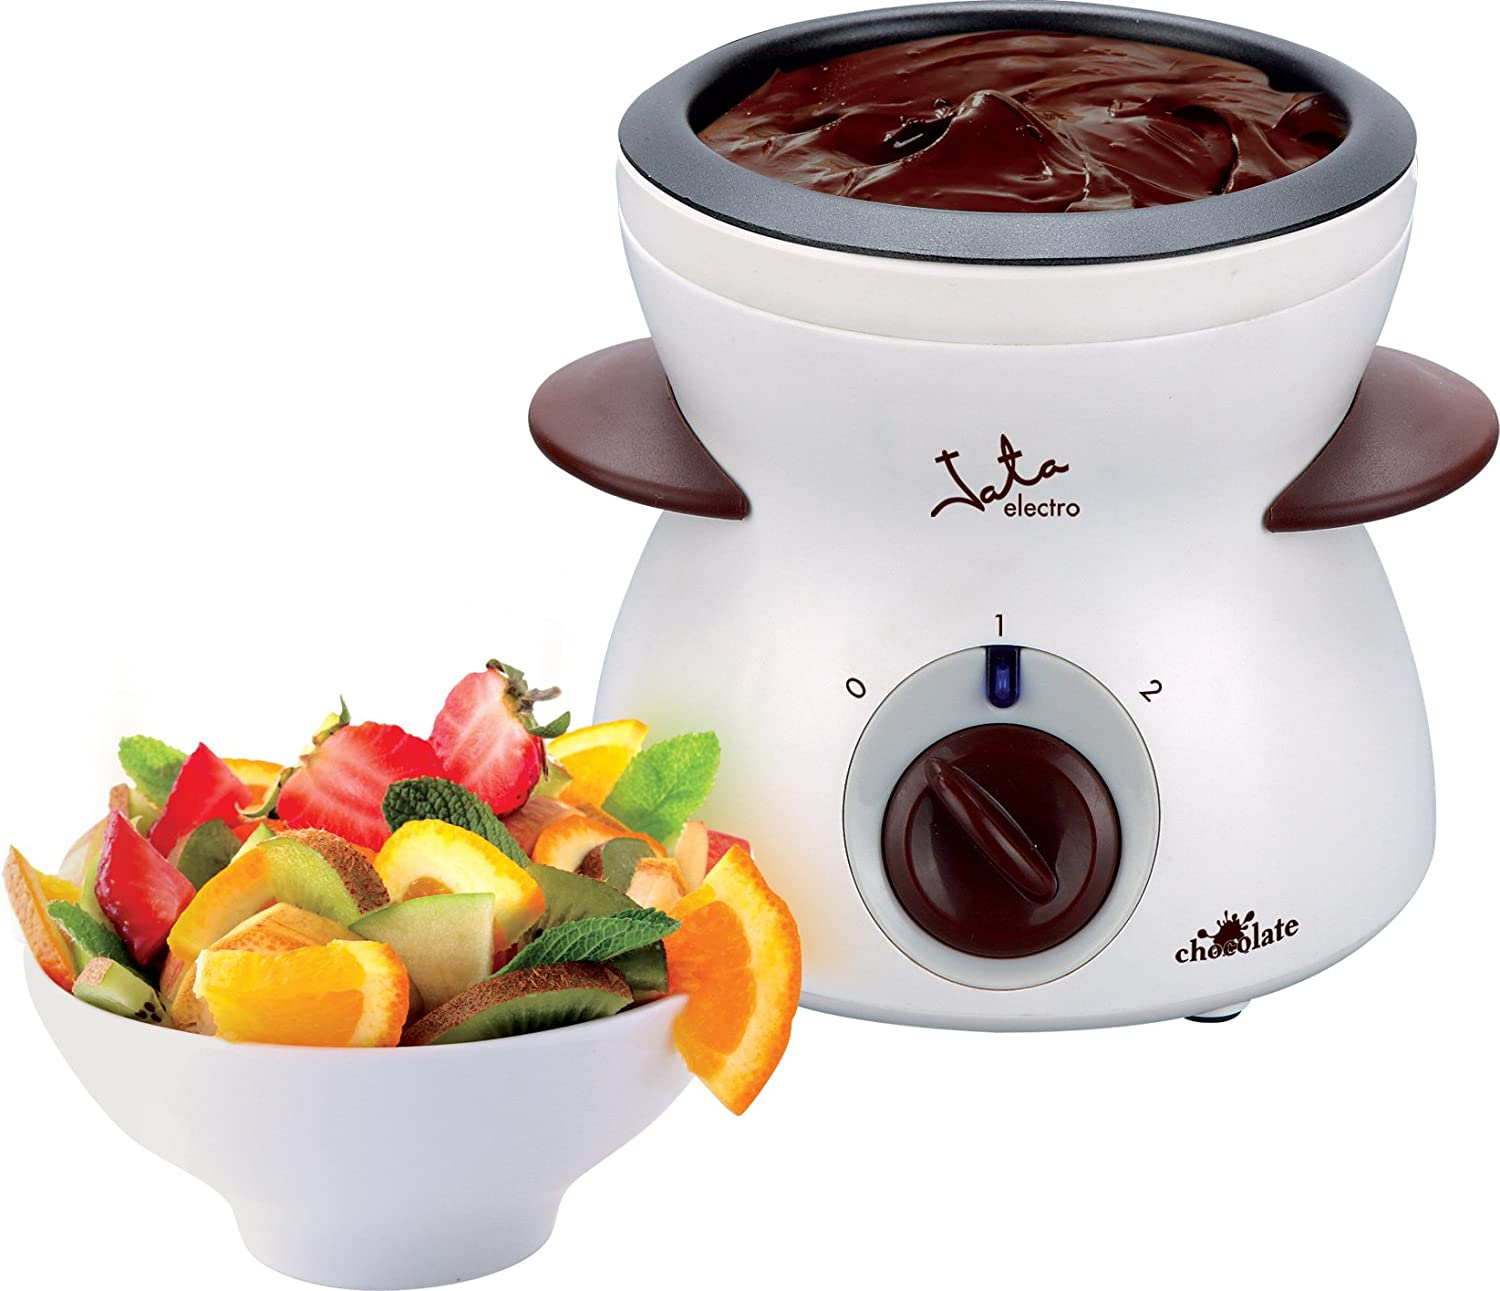 Jata FC112XL - Fondue de Chocolate 500 ml: Amazon.es: Hogar